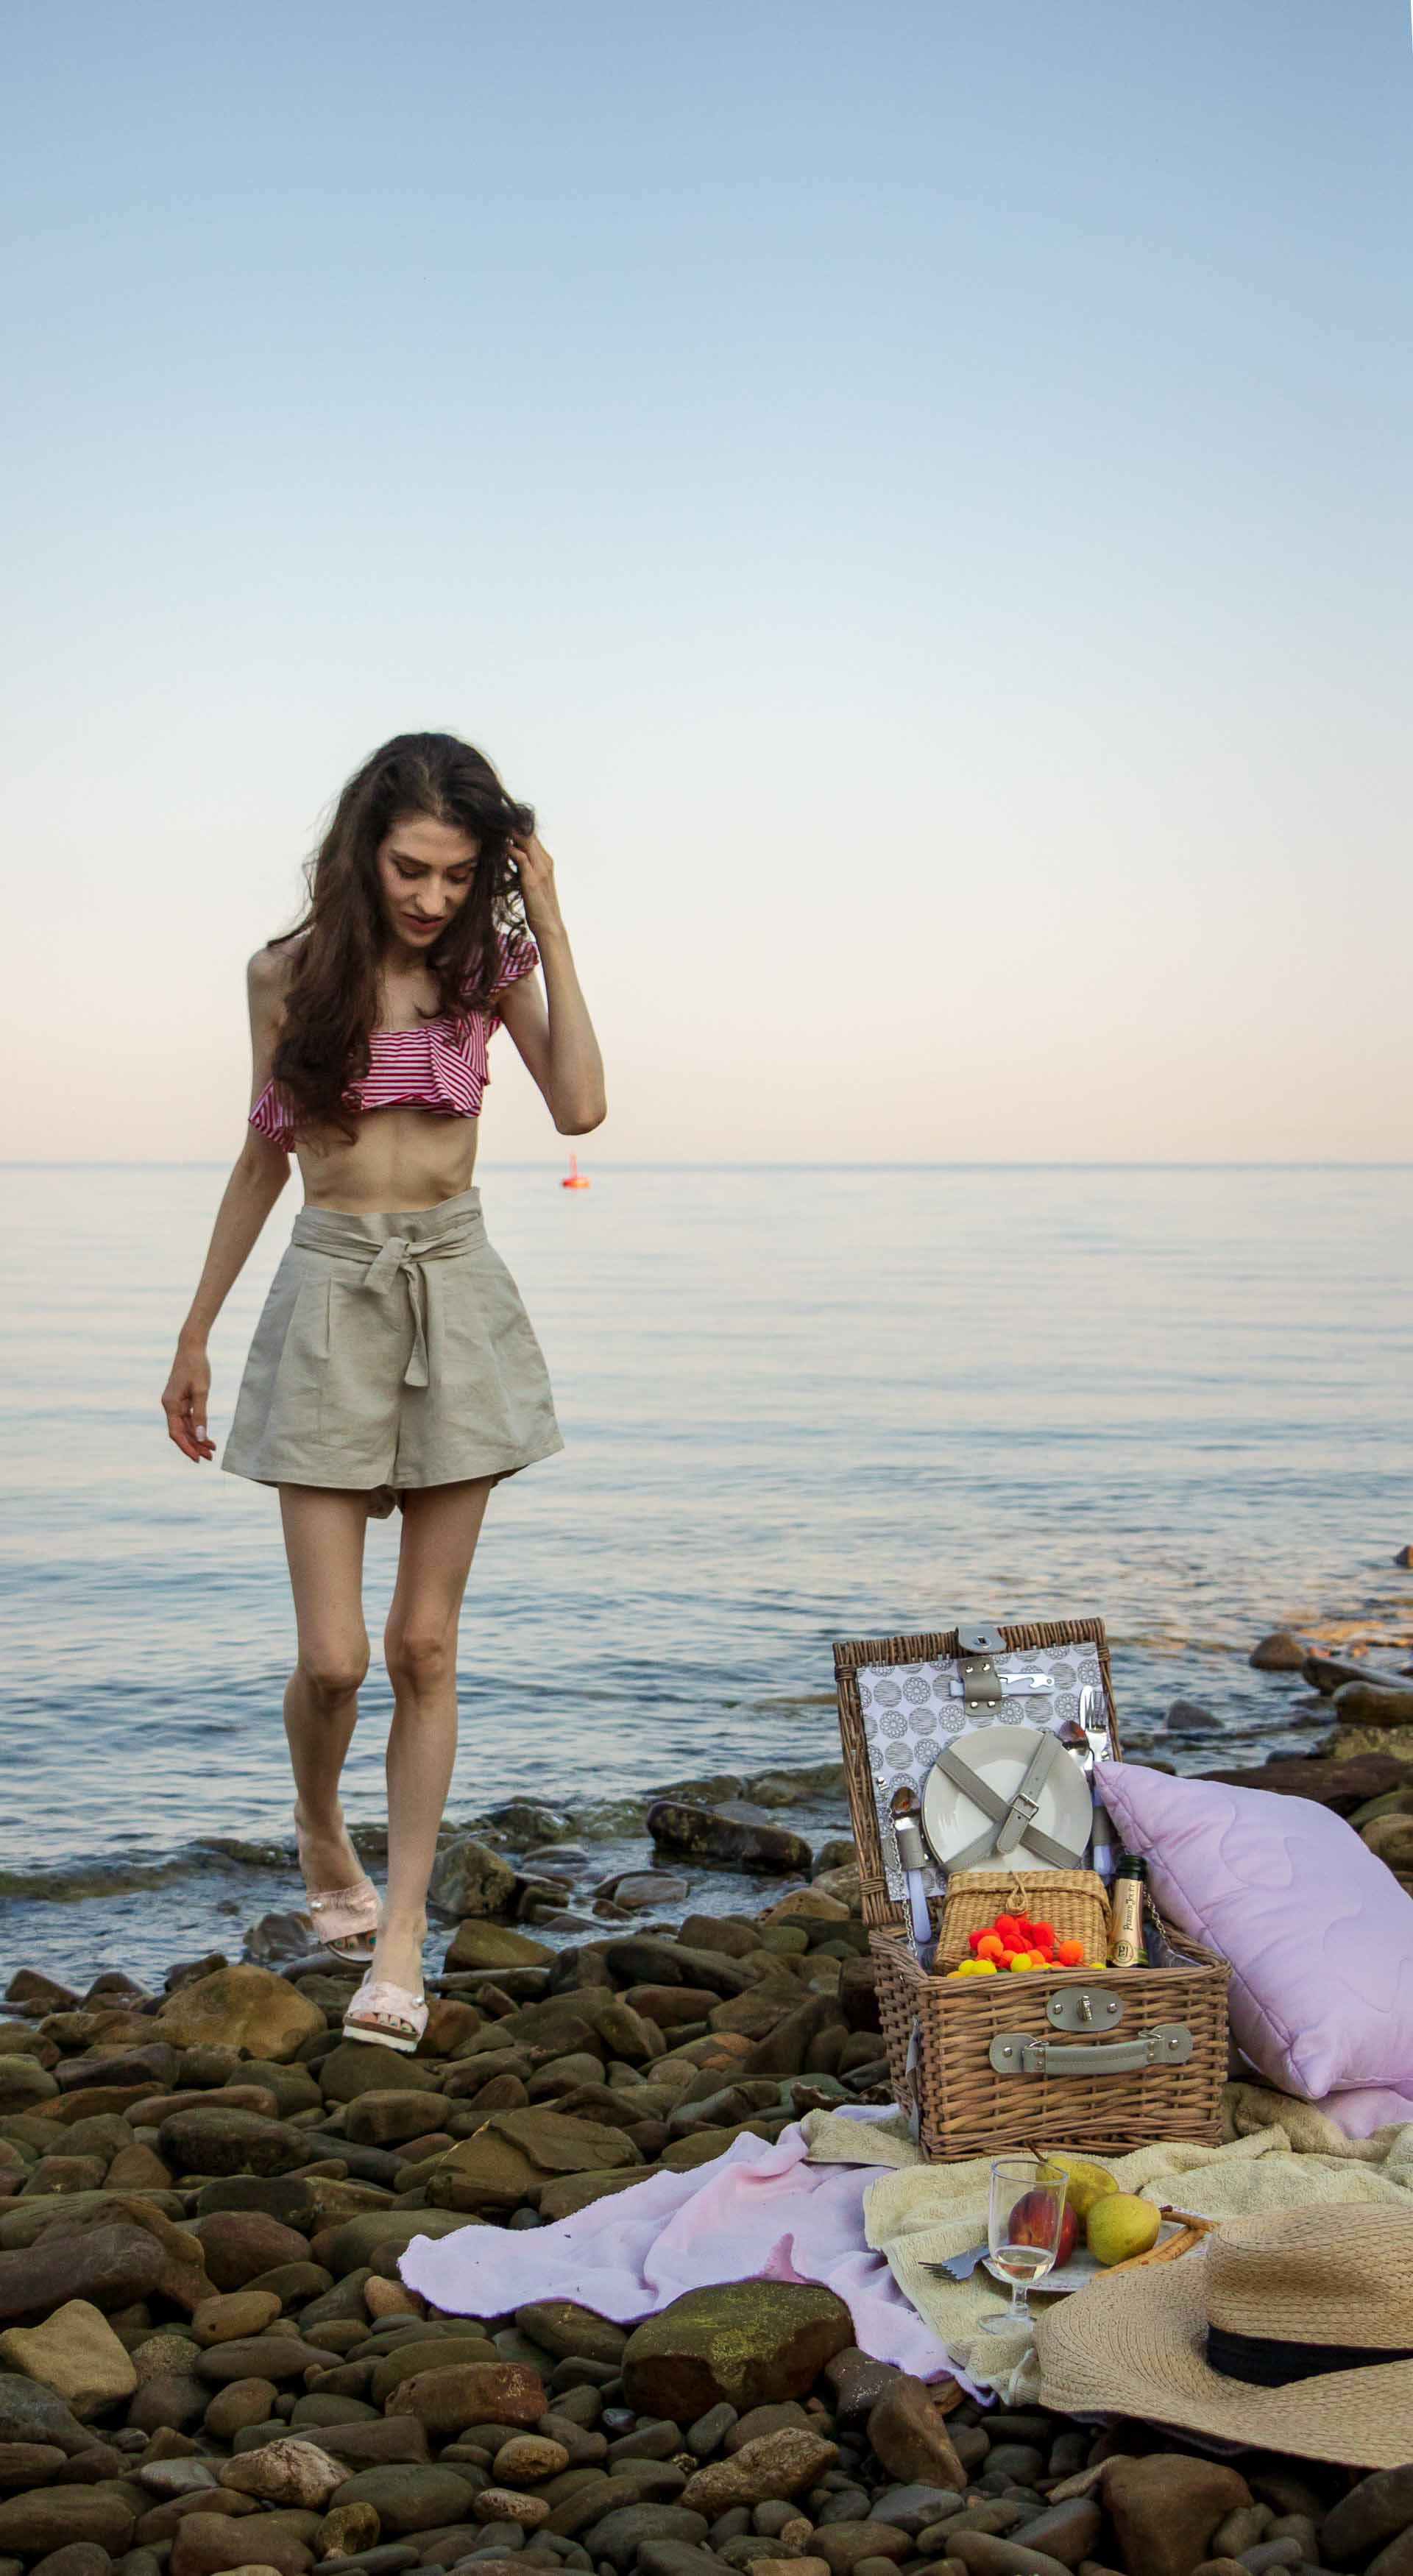 Slovenian Fashion Blogger Veronika Lipar of Brunette from Wall dressed in beige linen crop top, paper bag linen shorts, luxe pool slides, large straw hat, Nannacay basket bag while walking from the sea to the picnic spot on the beach